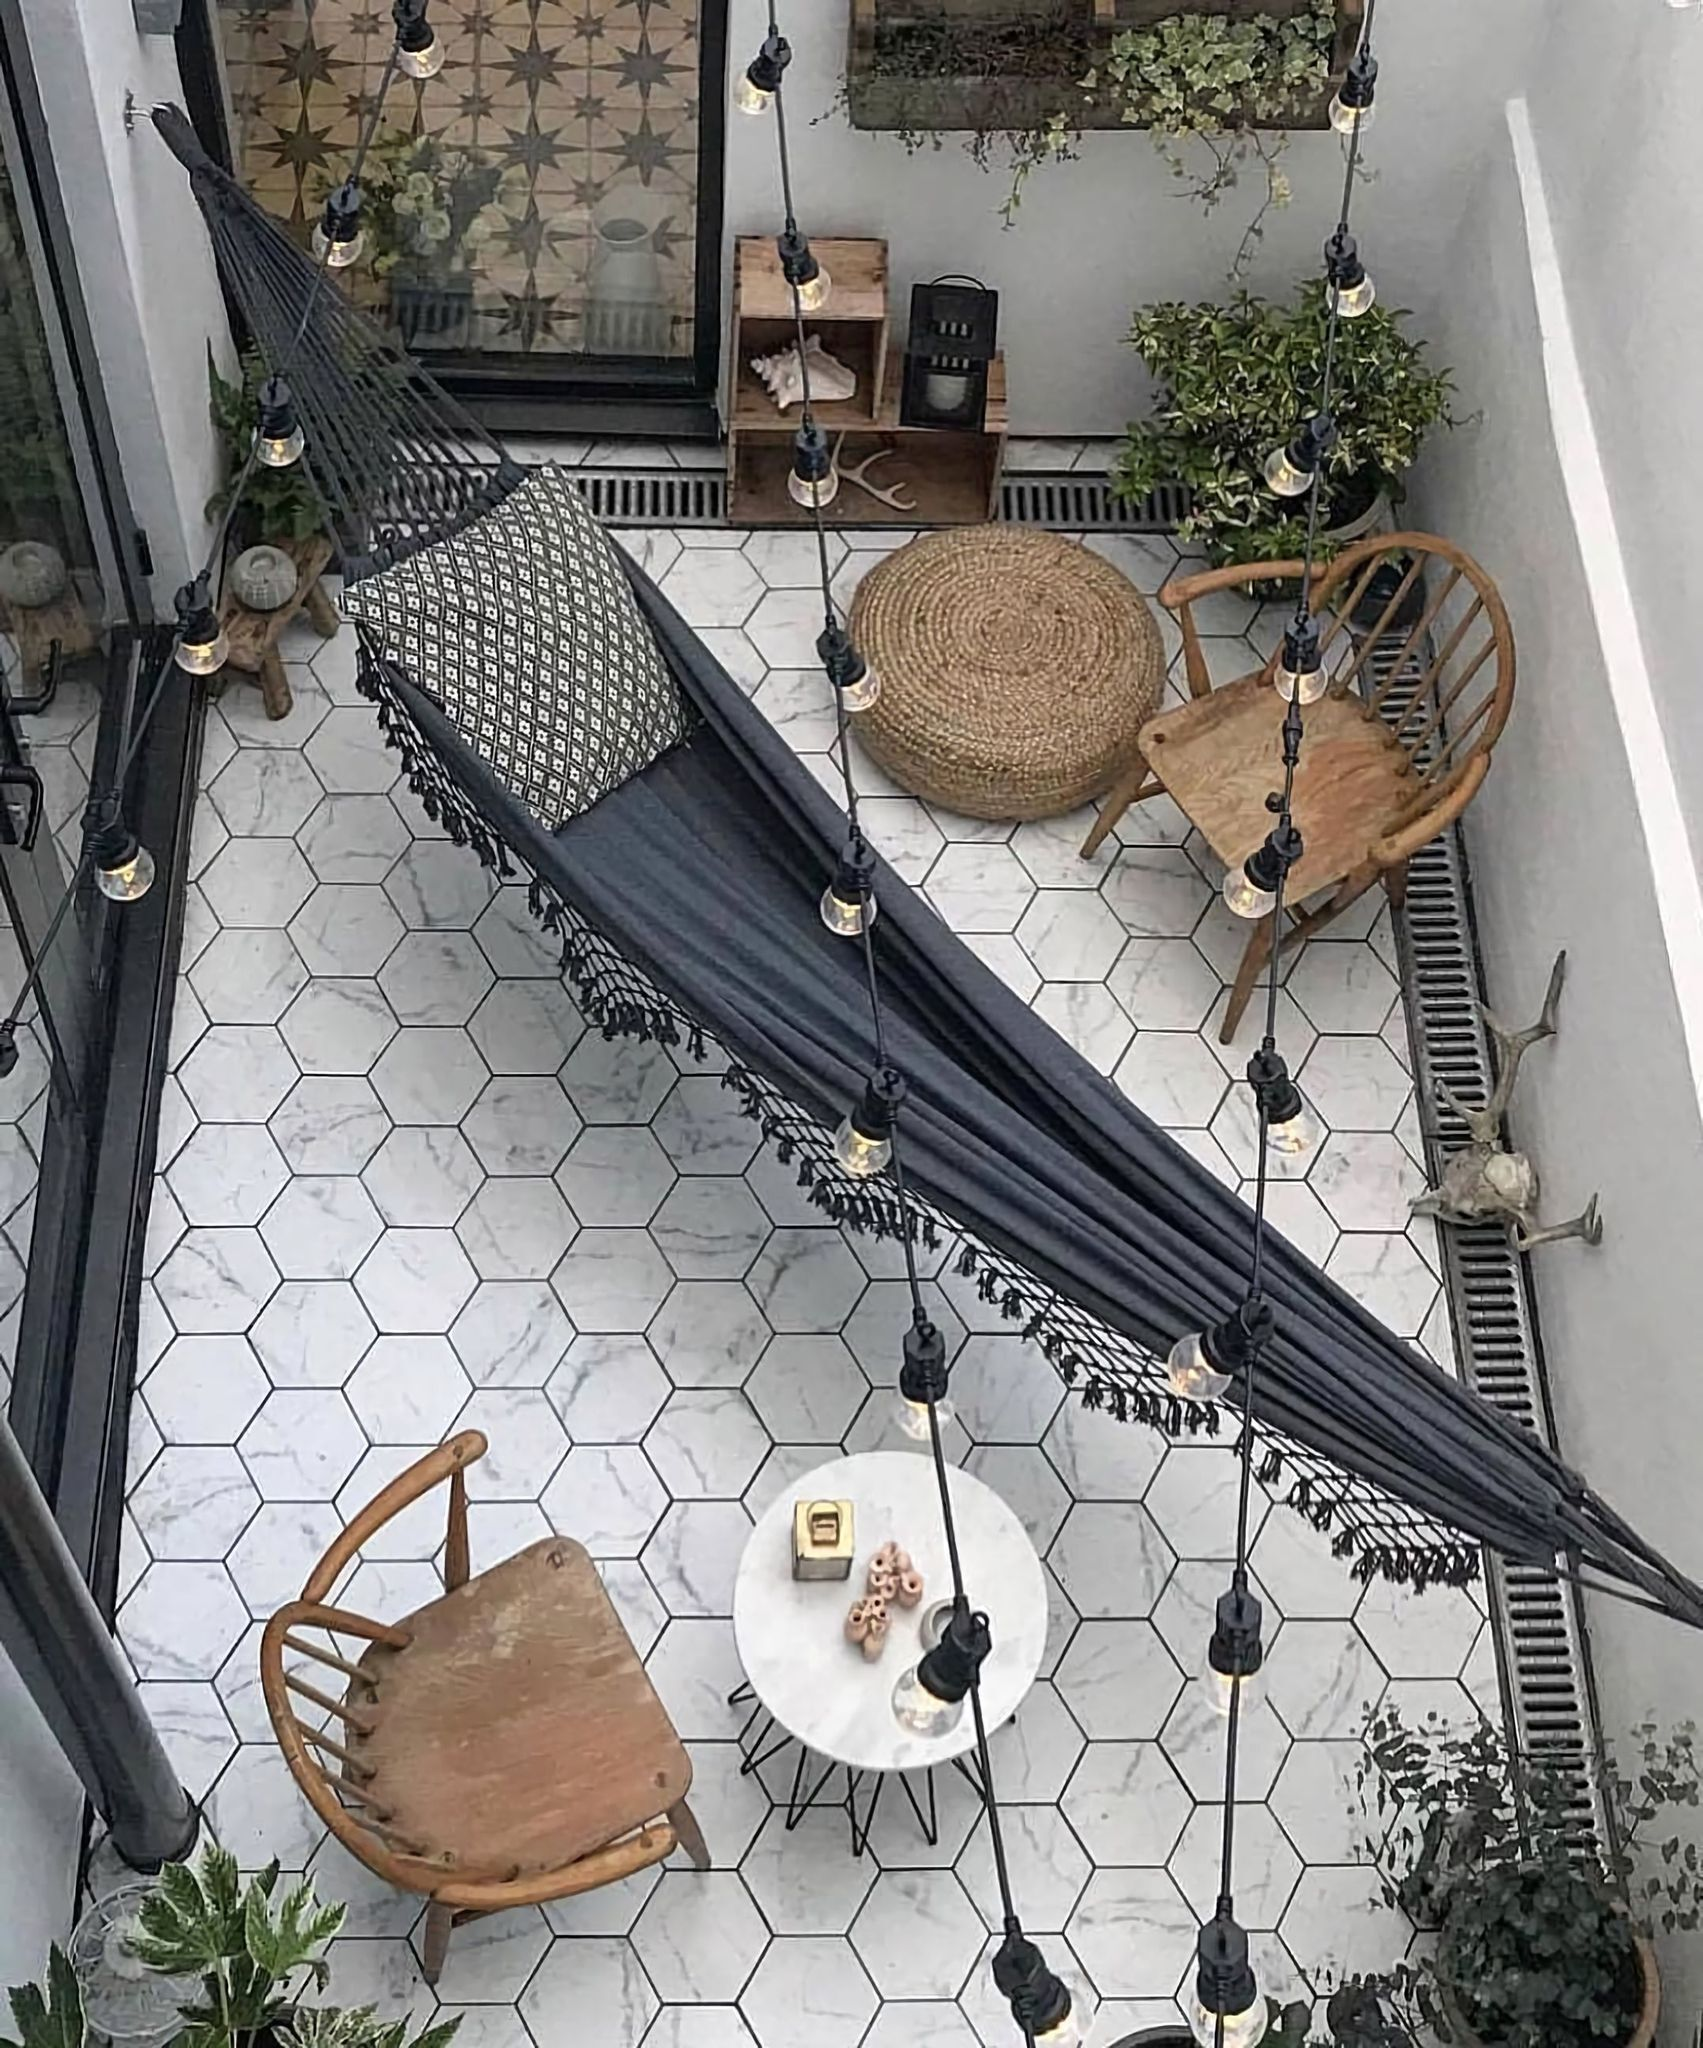 09 -A large hammock is installed in the middle of a lounge-style courtyard